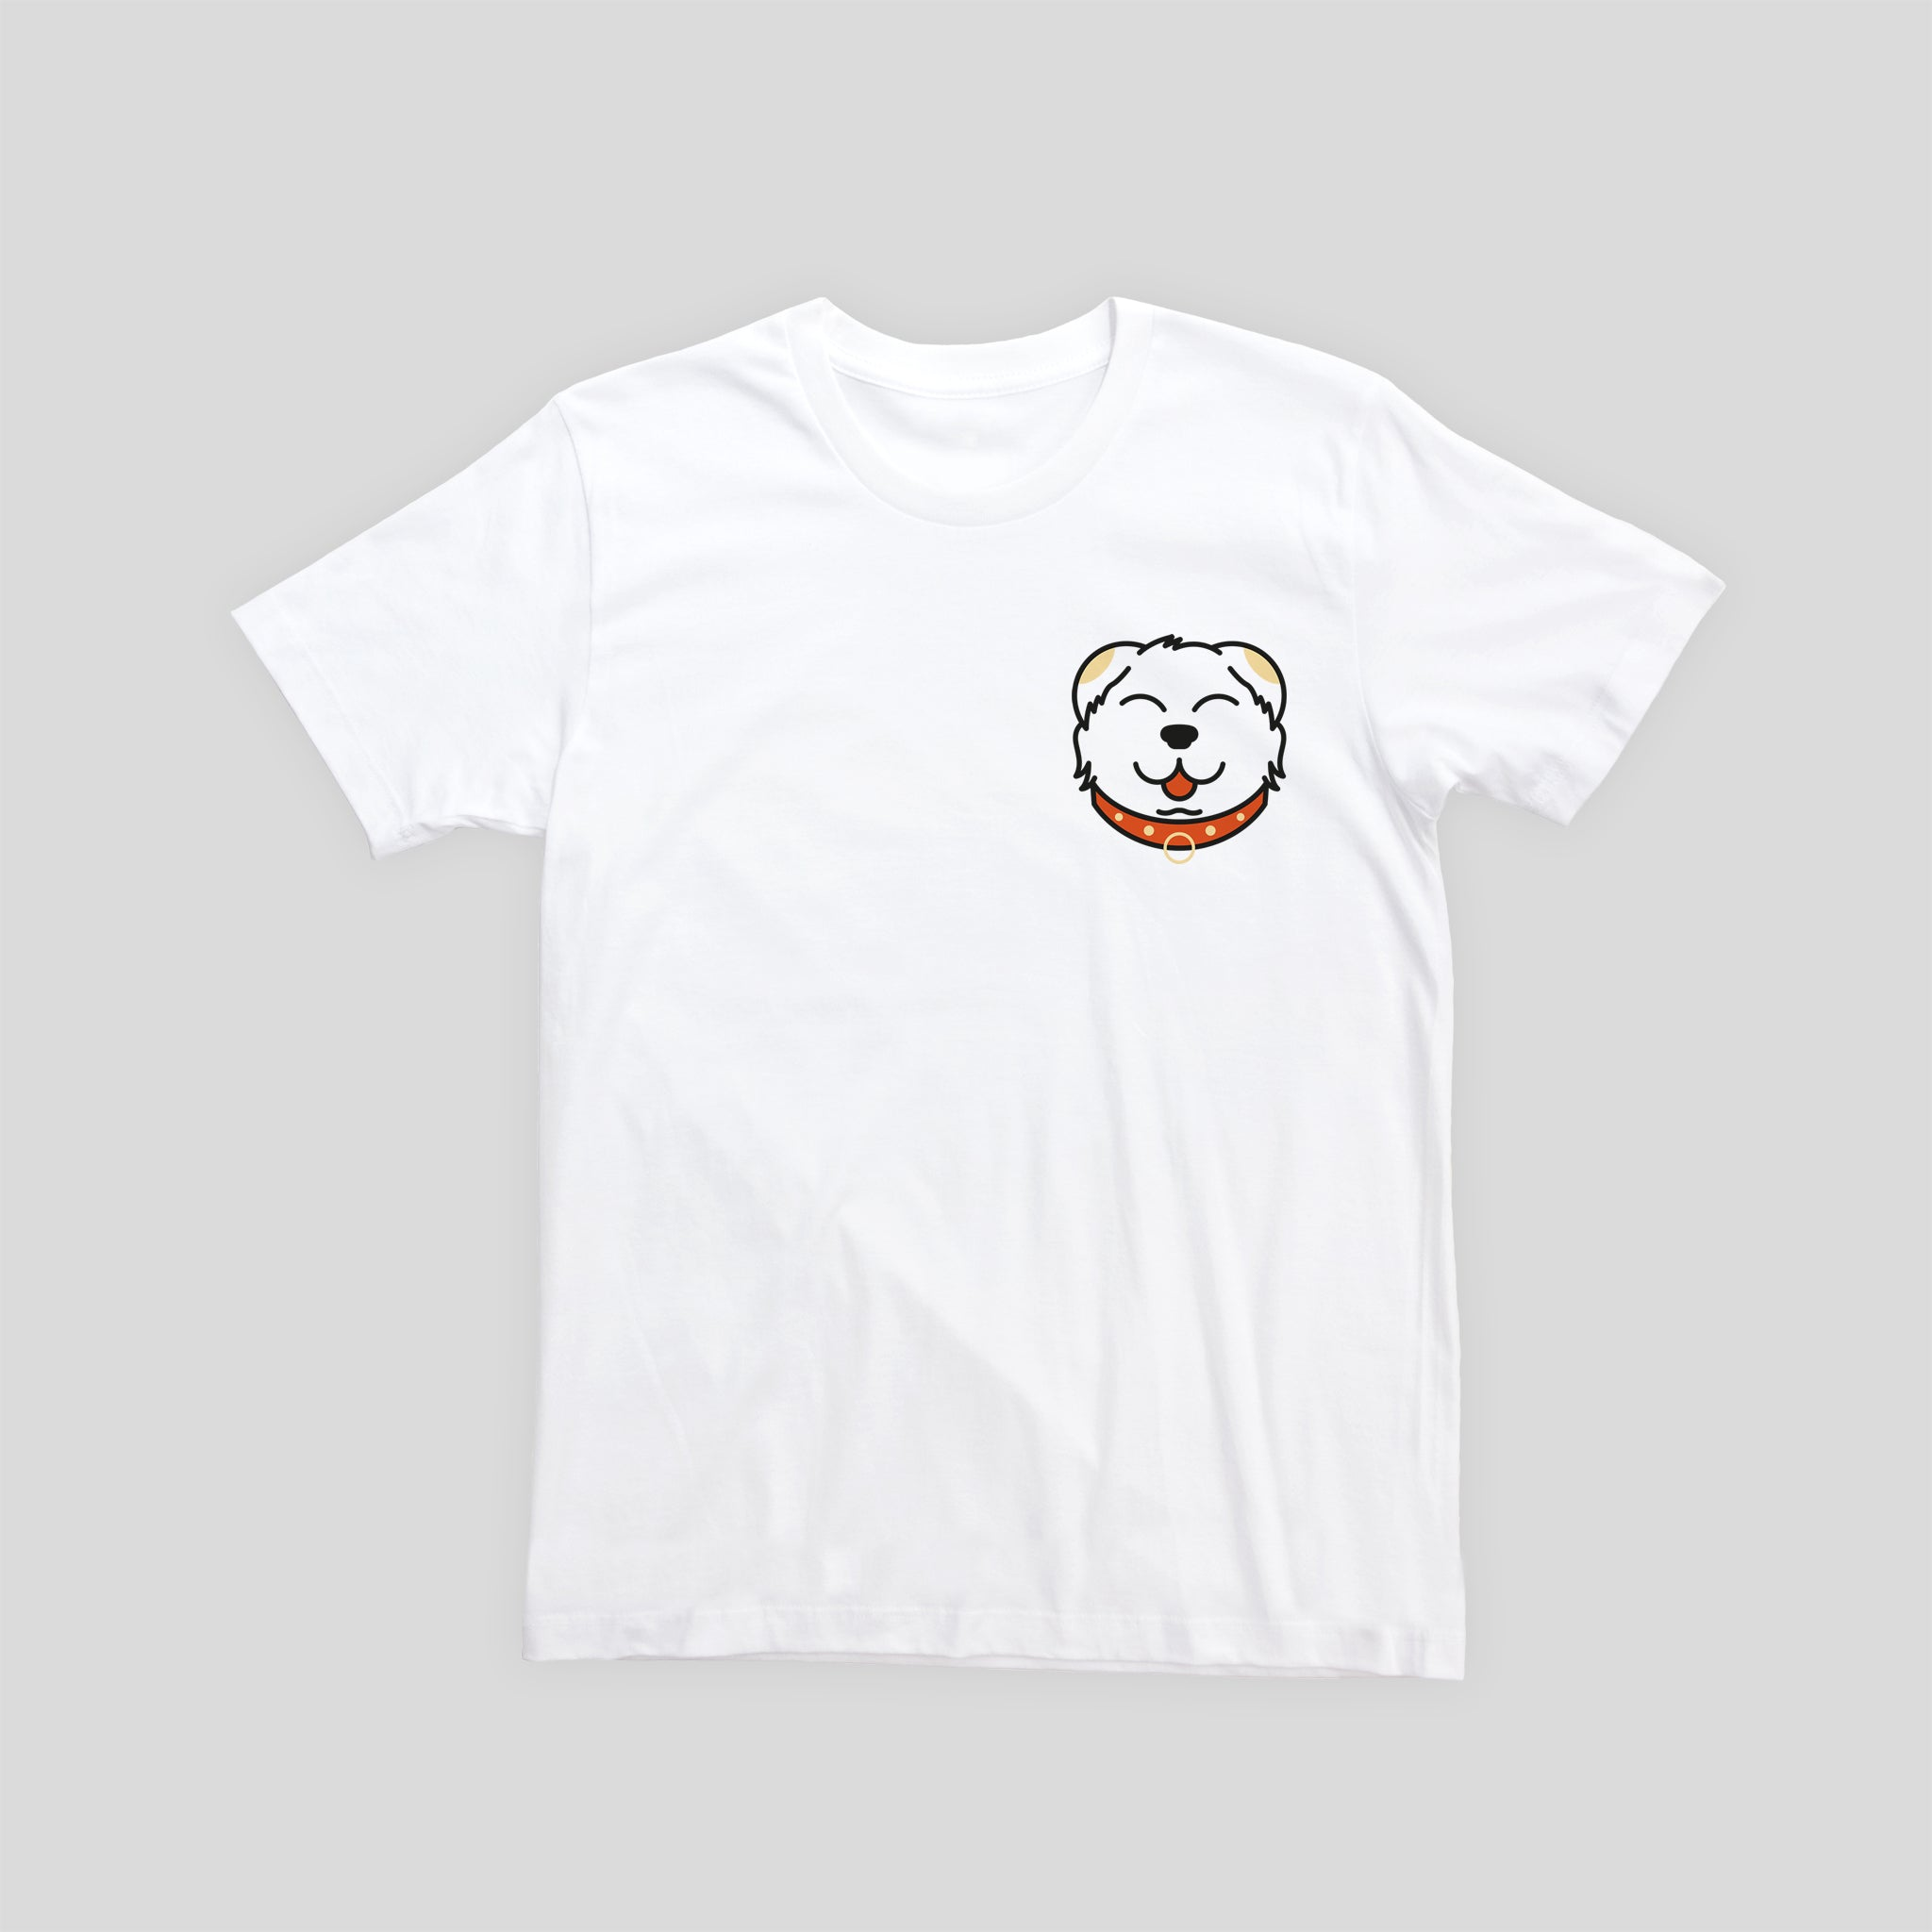 My Lucky Face II - Kids T-shirt